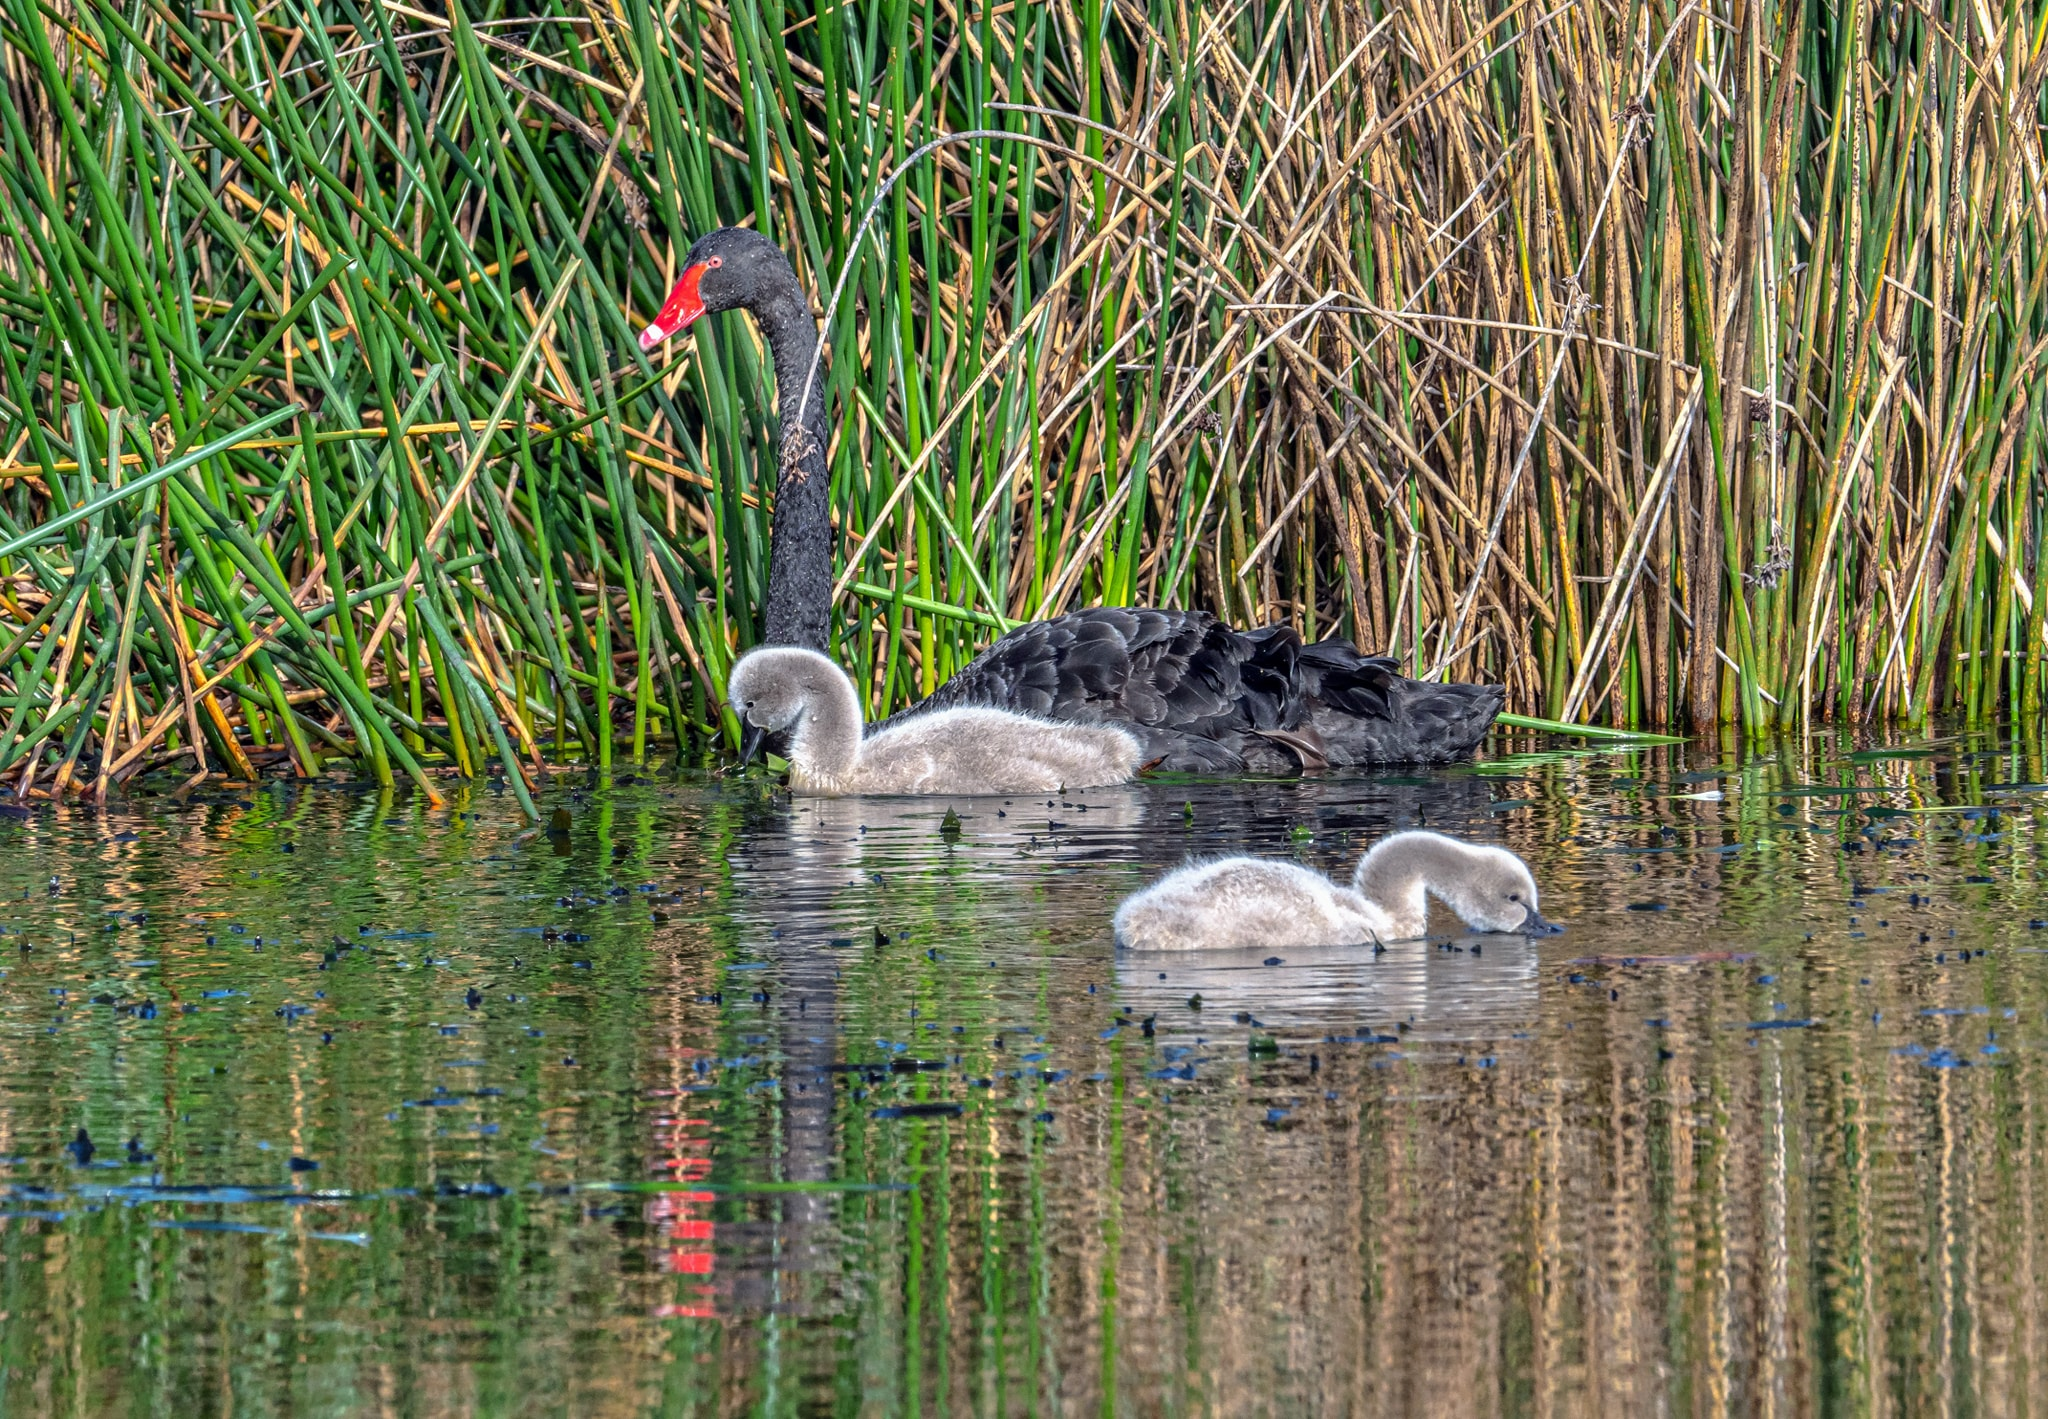 Early Spring in Melbourne and this black swan is raising cygnets in wetlands near Cranbourne. (Photo Shane Borham.)